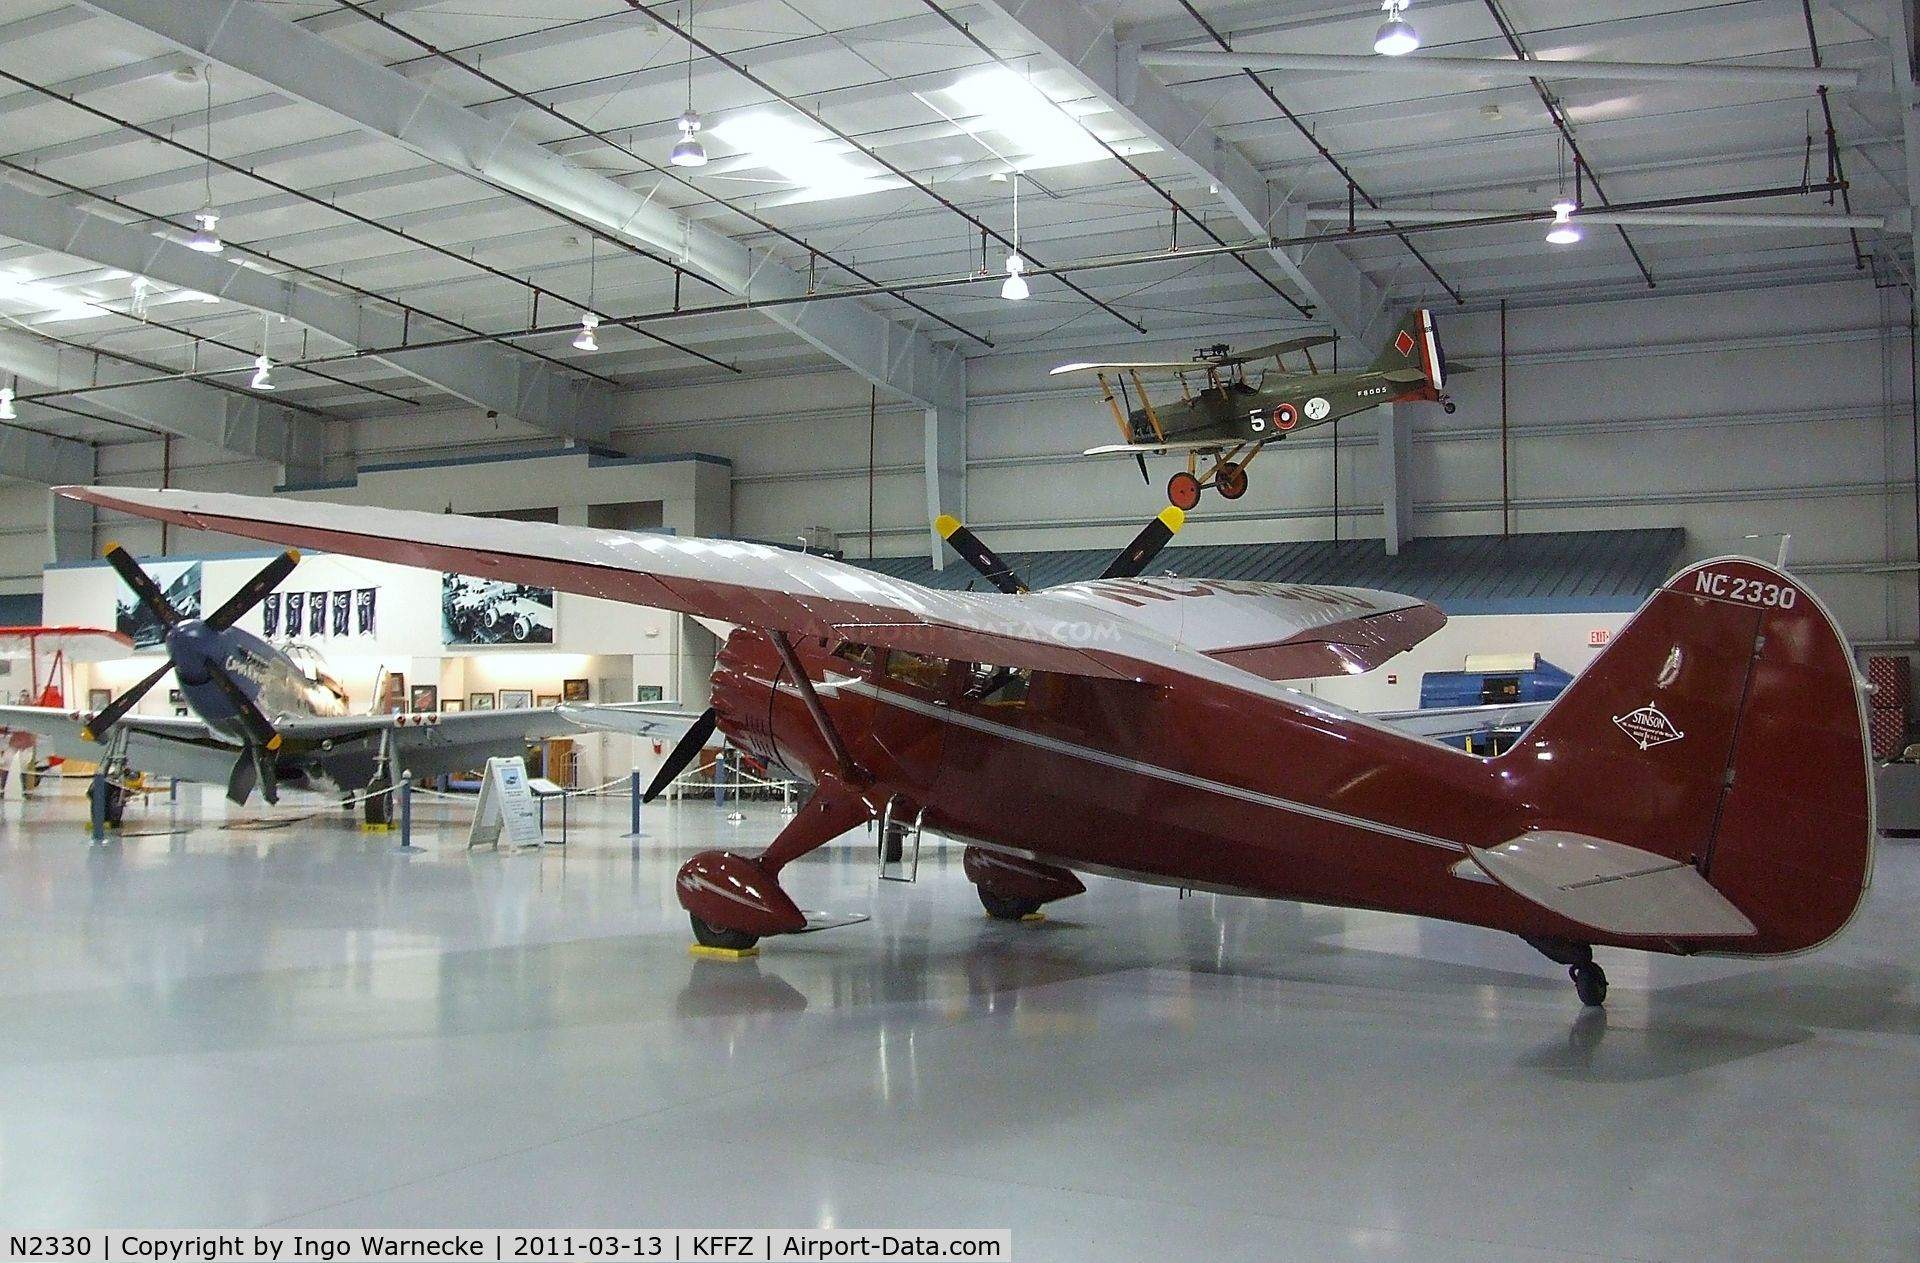 N2330, 1938 Stinson SR-10G Reliant C/N 3-5838, Stinson SR-10G Reliant at the CAF Arizona Wing Museum, Mesa AZ